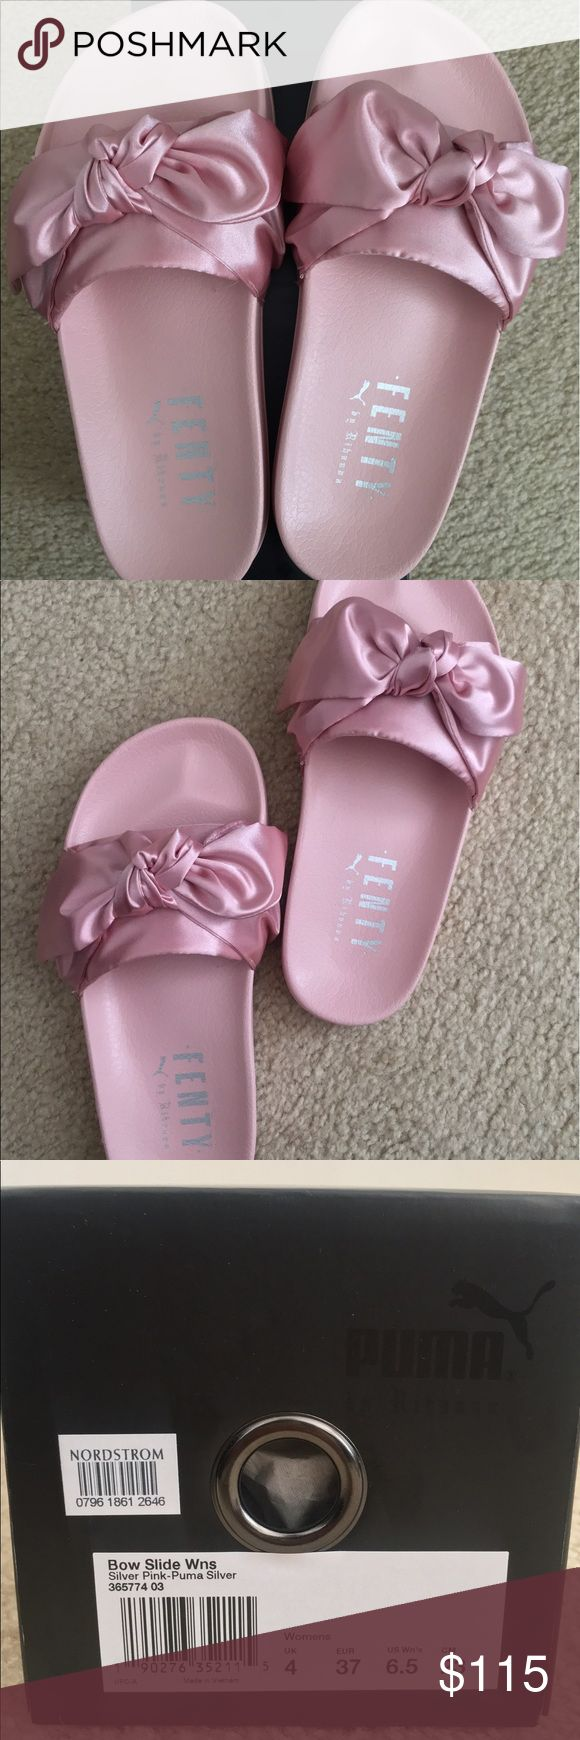 Puma Fenty Bow Slides by Rihanna Pink Puma Fenty Bow Slides by Rihanna sz 6.5 in women. Never worn. It's too small for me unfortunately. The Pink colored Bow Slides are sold out almost everywhere. Puma Shoes Slippers